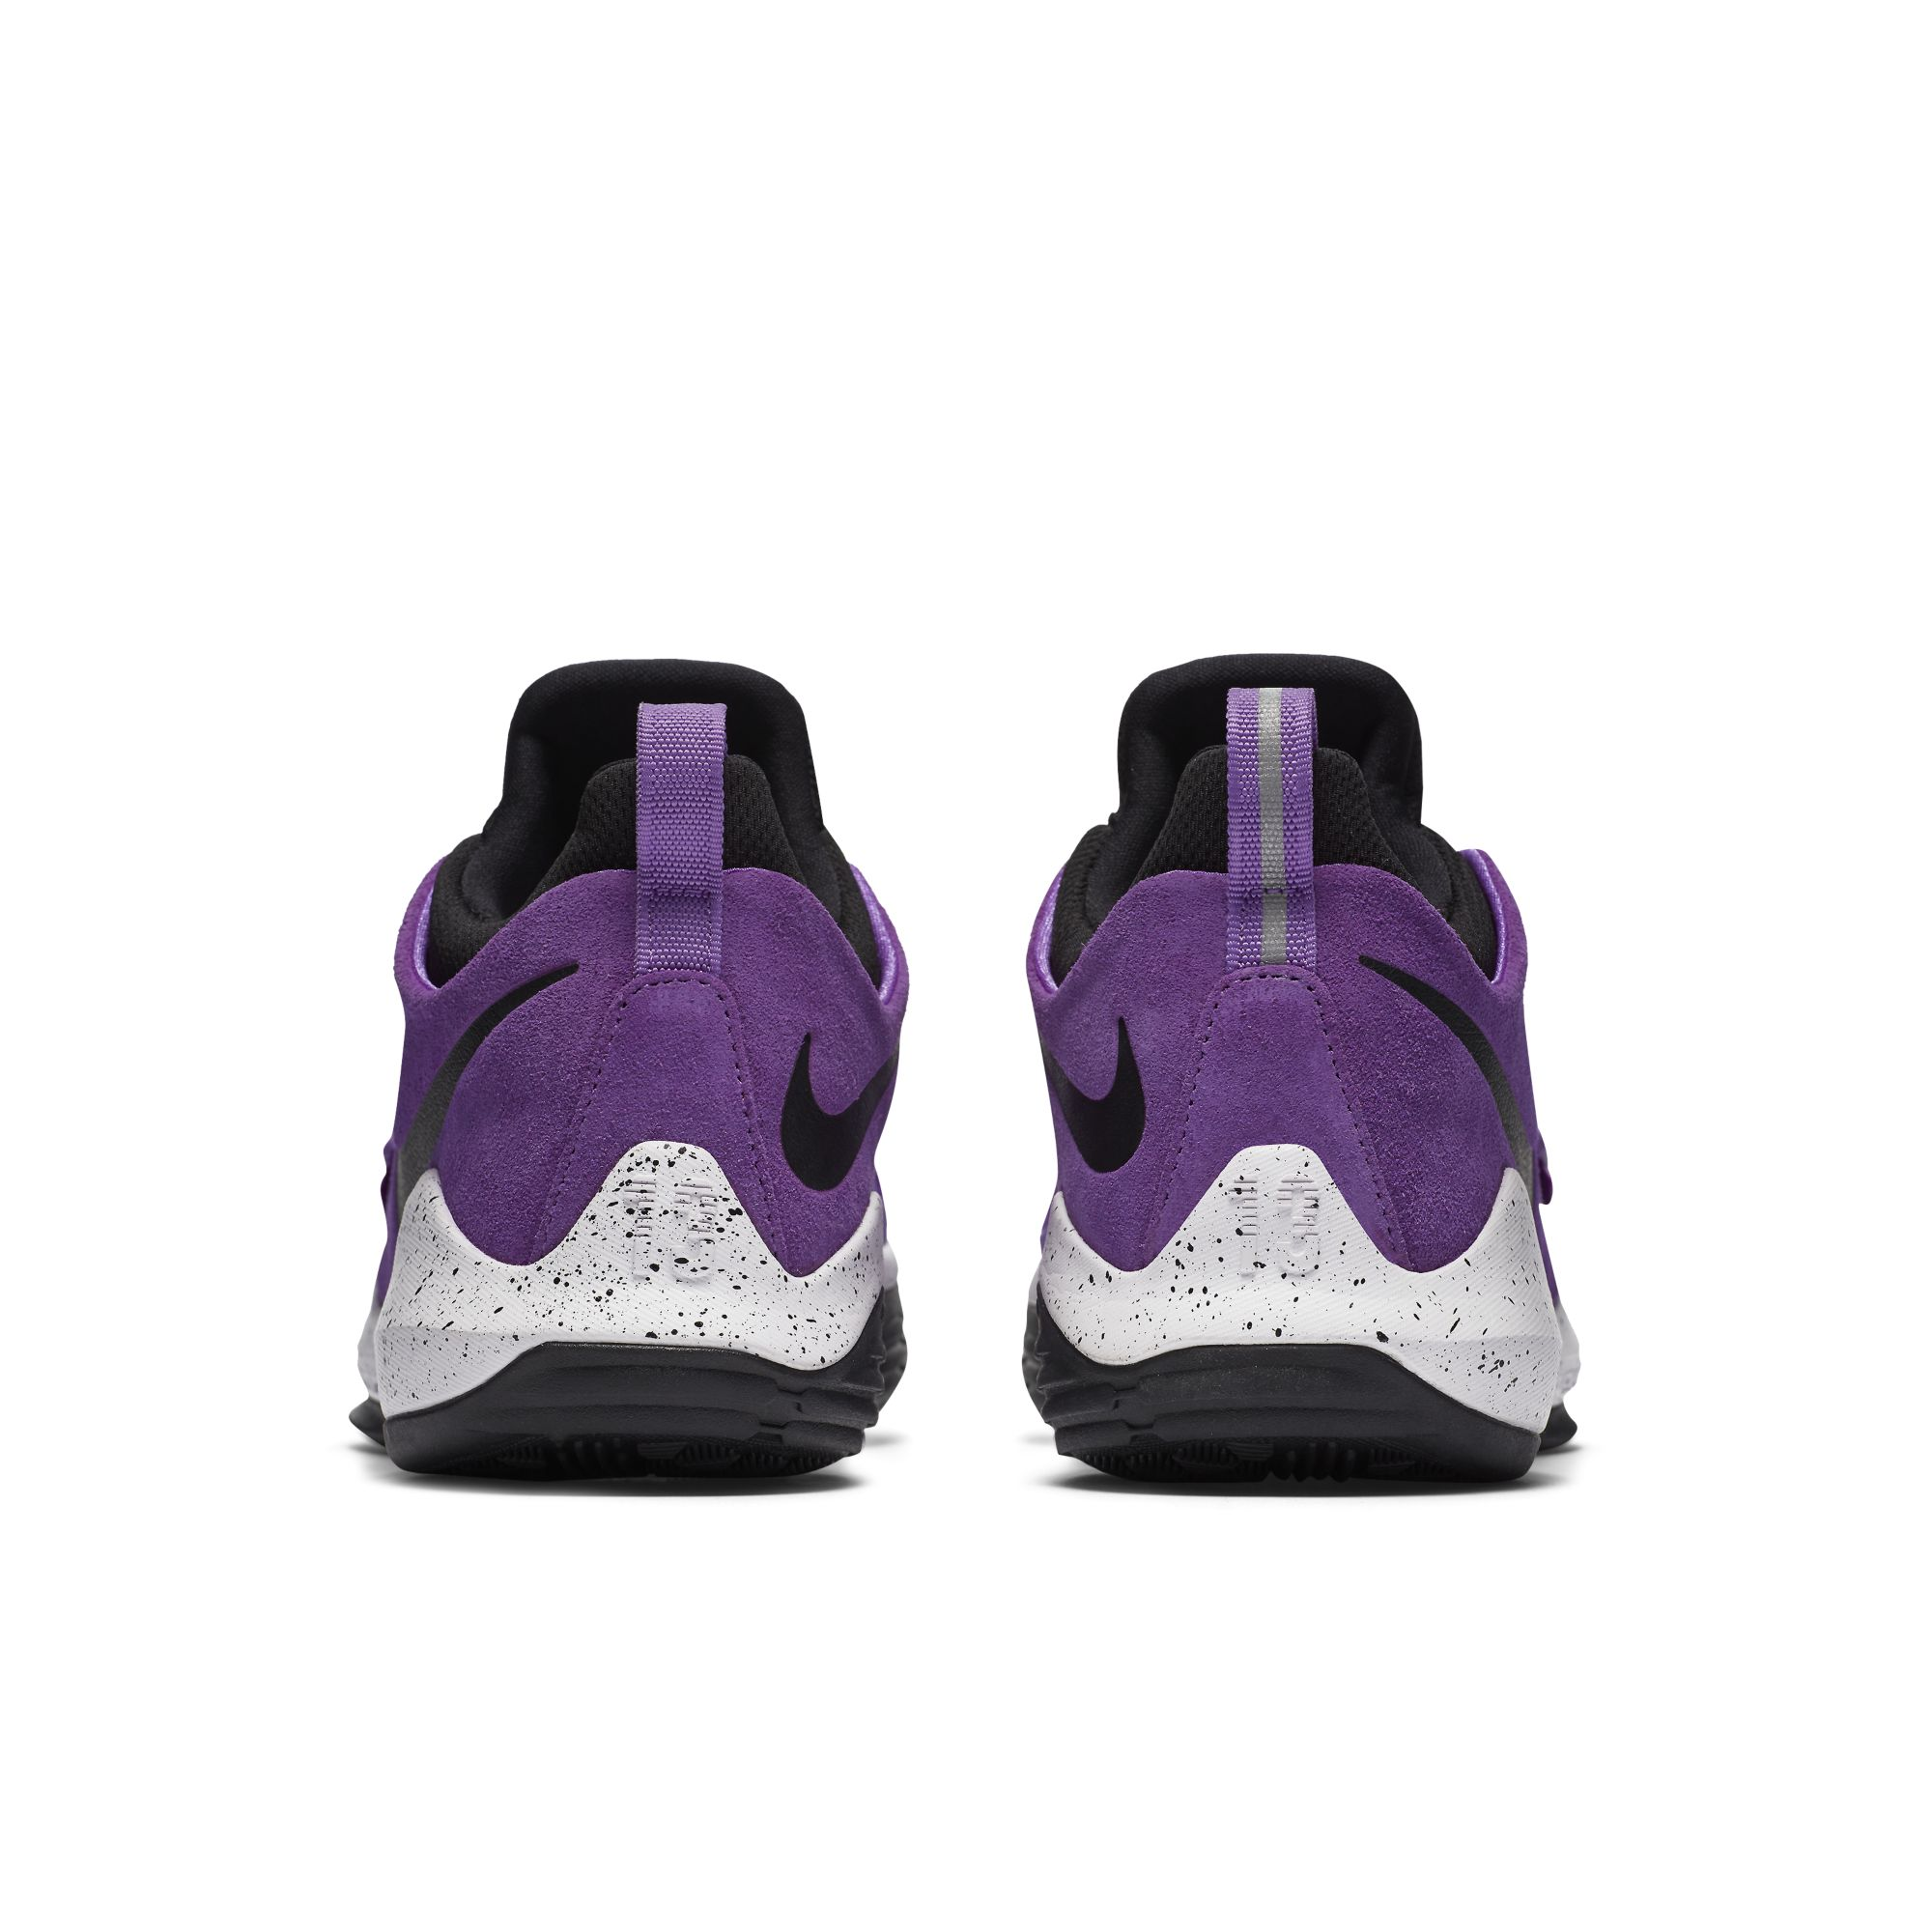 befa21f924d7 nike PG 1 bright purple 4 - WearTesters